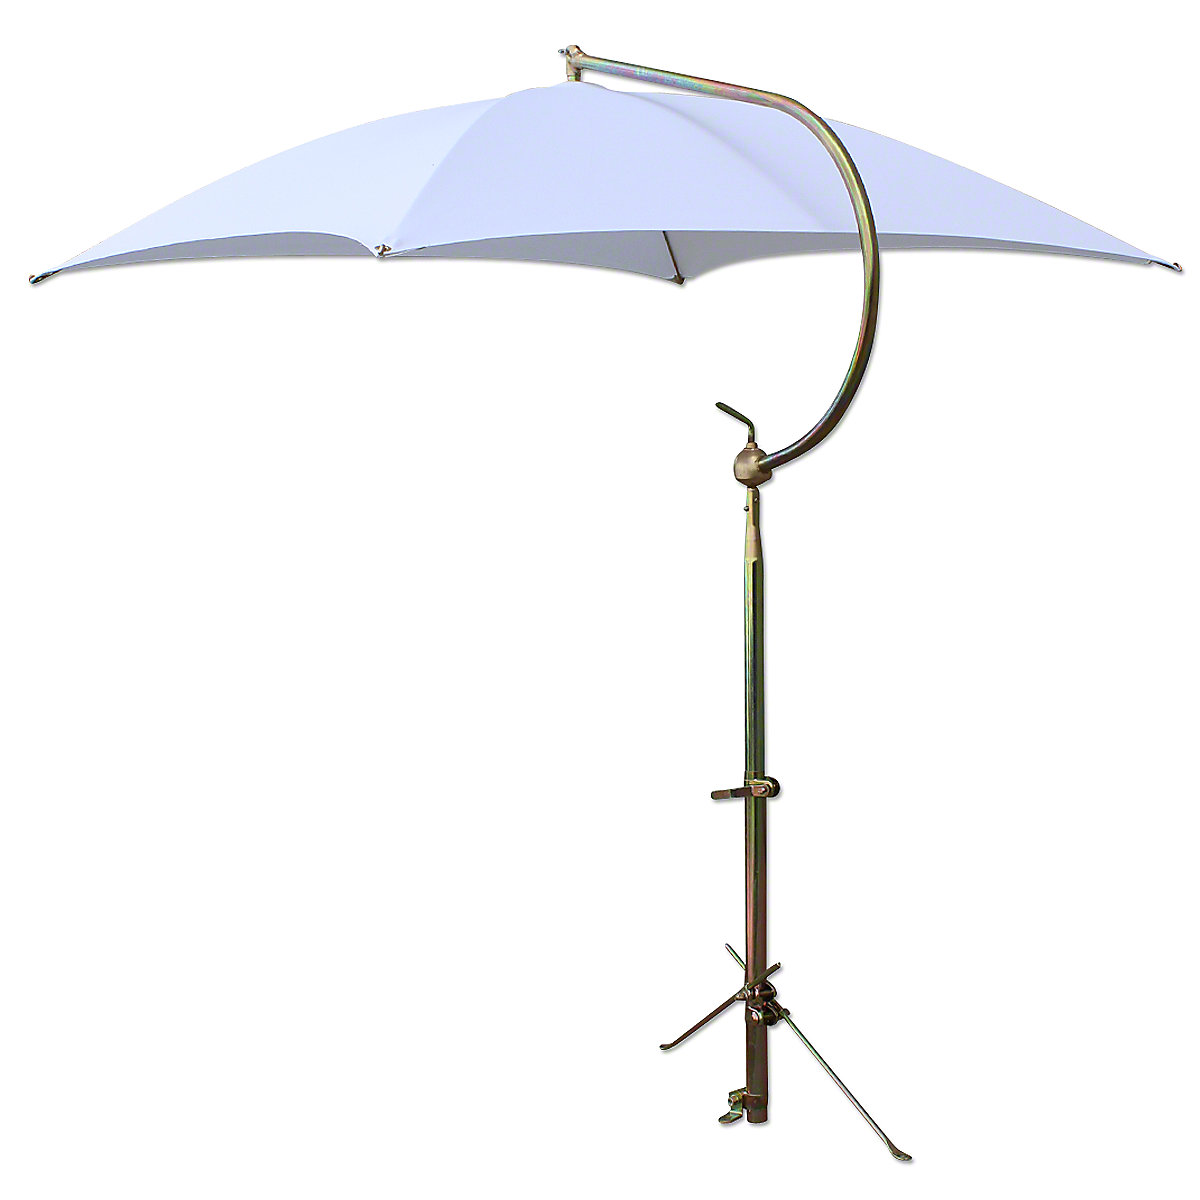 Deluxe White Tractor Umbrella With Mounting Brackets.